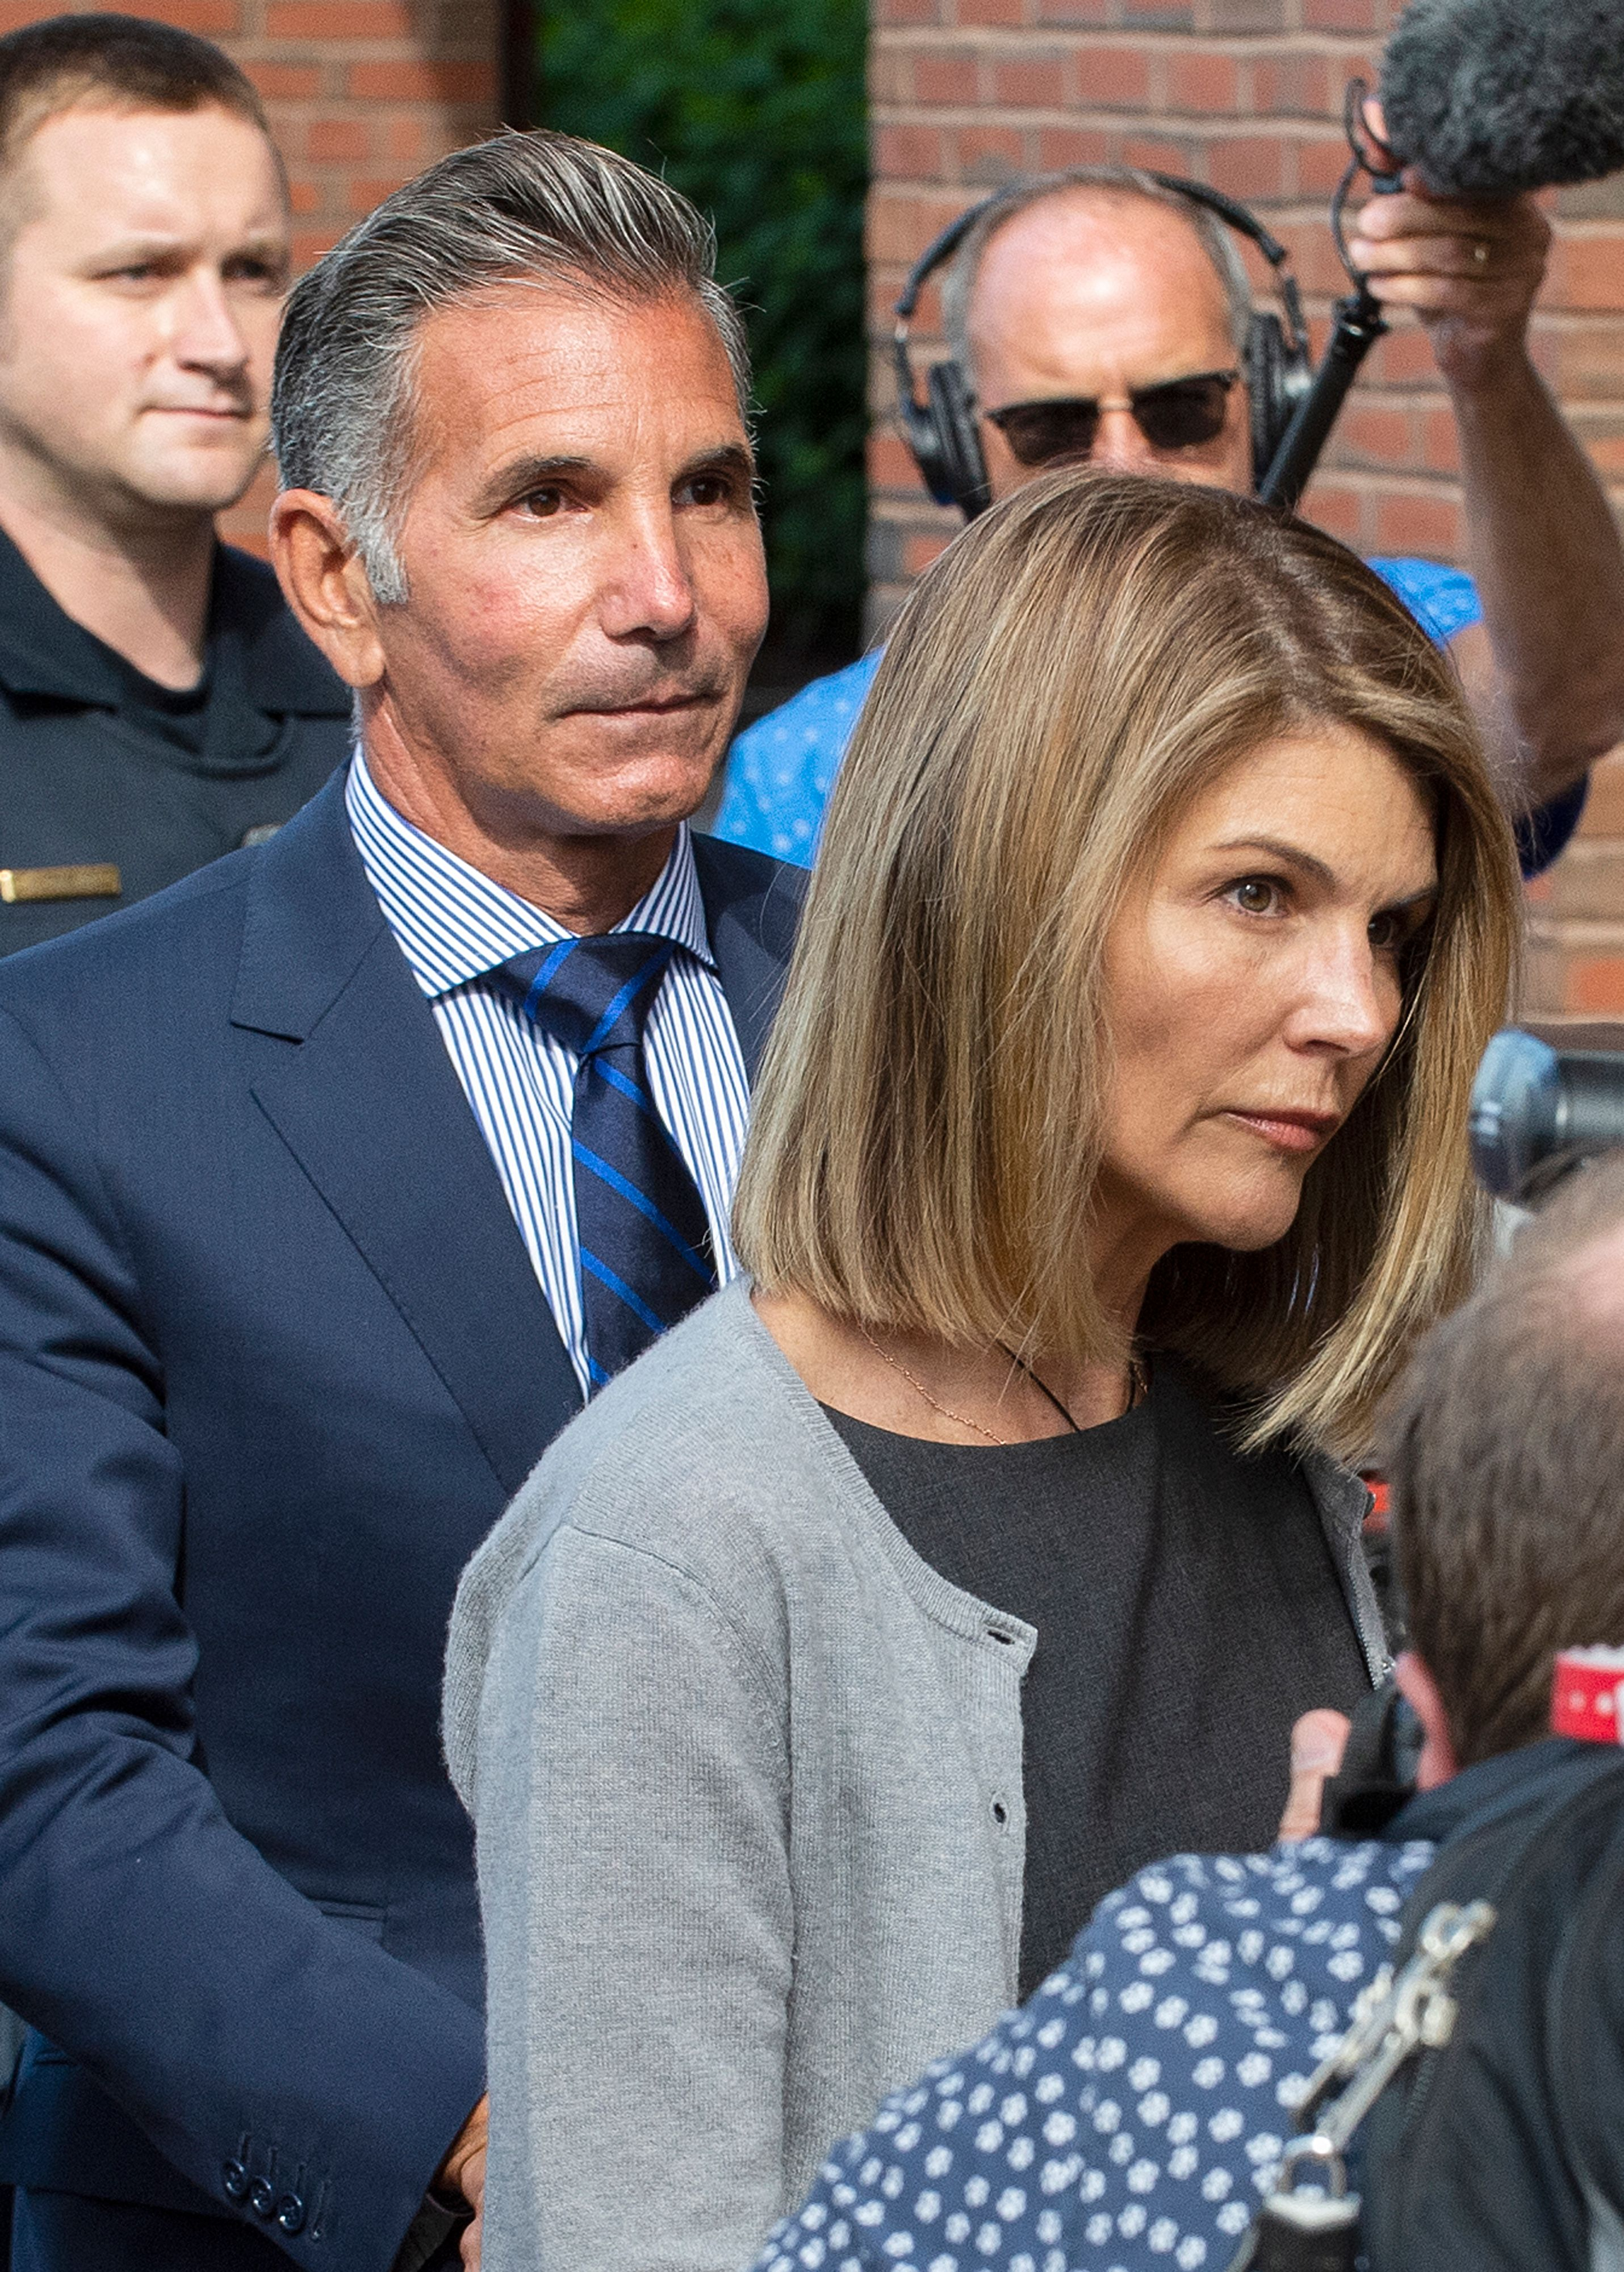 Actress Lori Loughlin (R) and husband Mossimo Giannulli exit the Boston Federal Court house after a pre-trial hearing with Magistrate Judge Kelley at the John Joseph Moakley US Courthouse in Boston on August 27, 2019. - Loughlin and Giannulli are charged with conspiracy to commit mail and wire fraud and conspiracy to commit money laundering in the college admissions scandal. (Photo credit JOSEPH PREZIOSO/AFP/Getty Images)